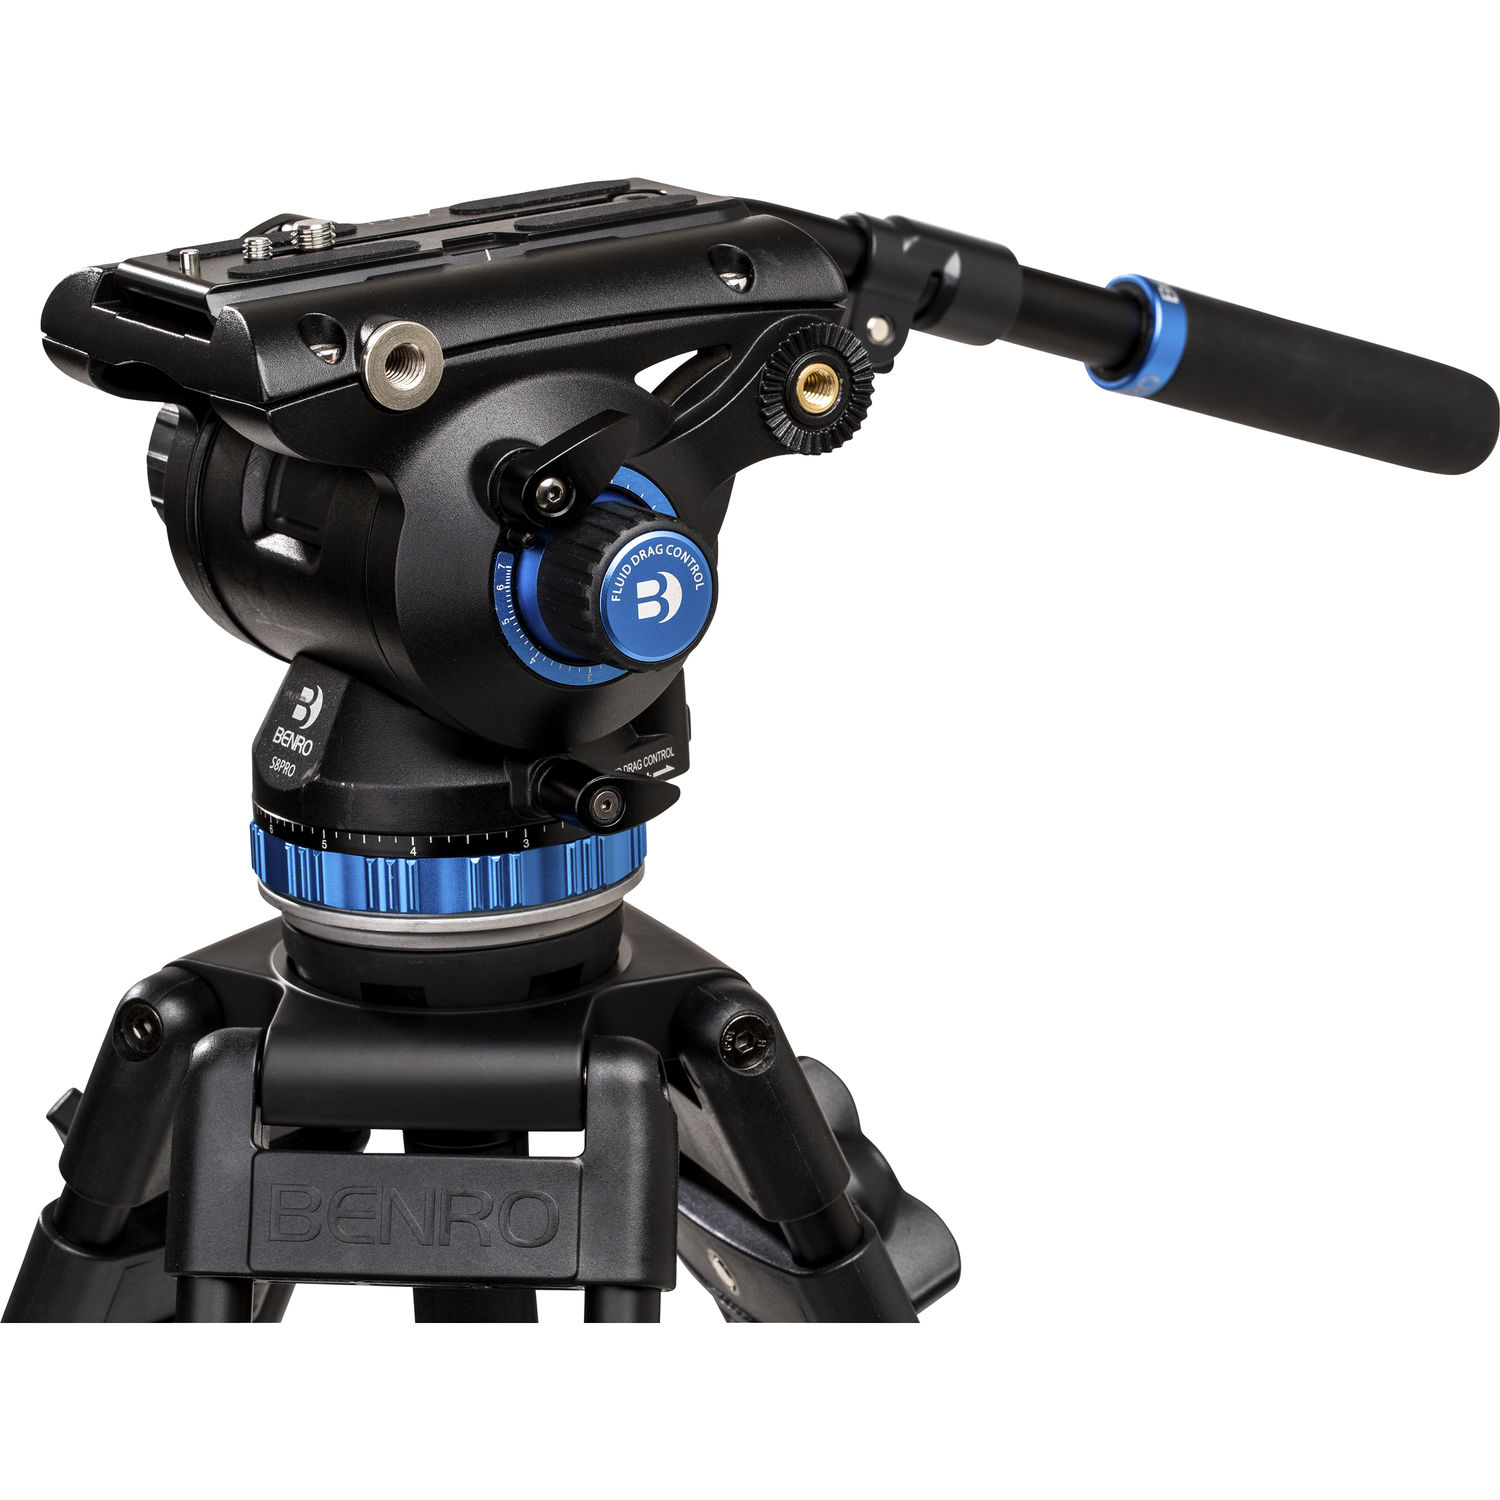 Benro S8 Pro Fluid Video Head